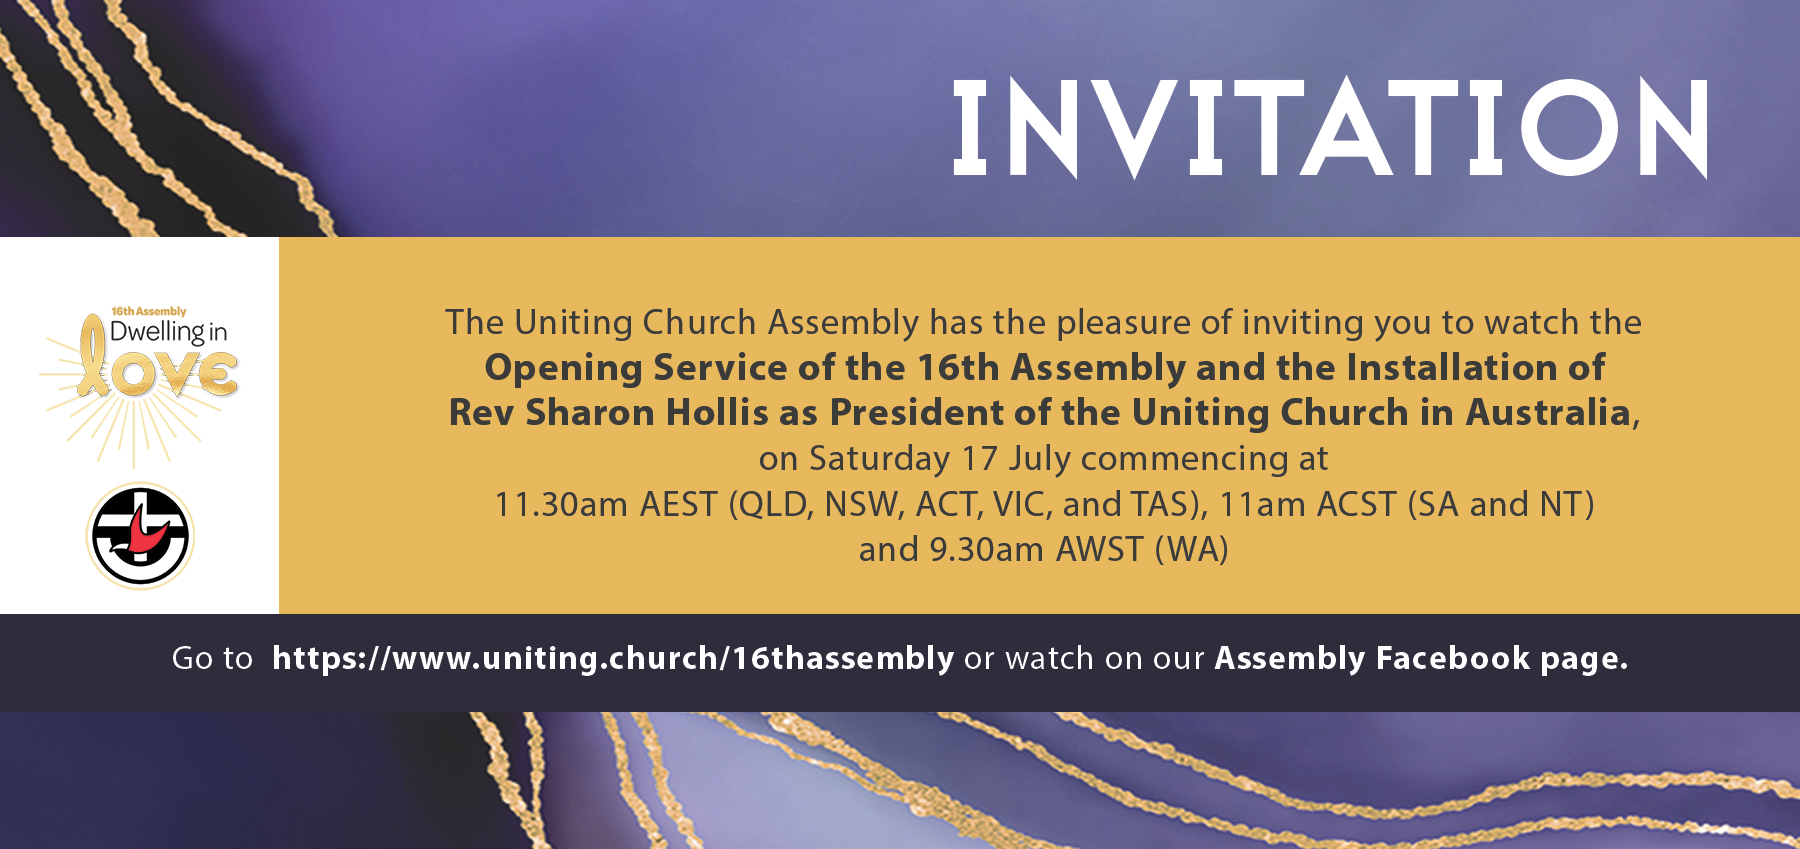 Leading with creativity and hope, Uniting Church Australia